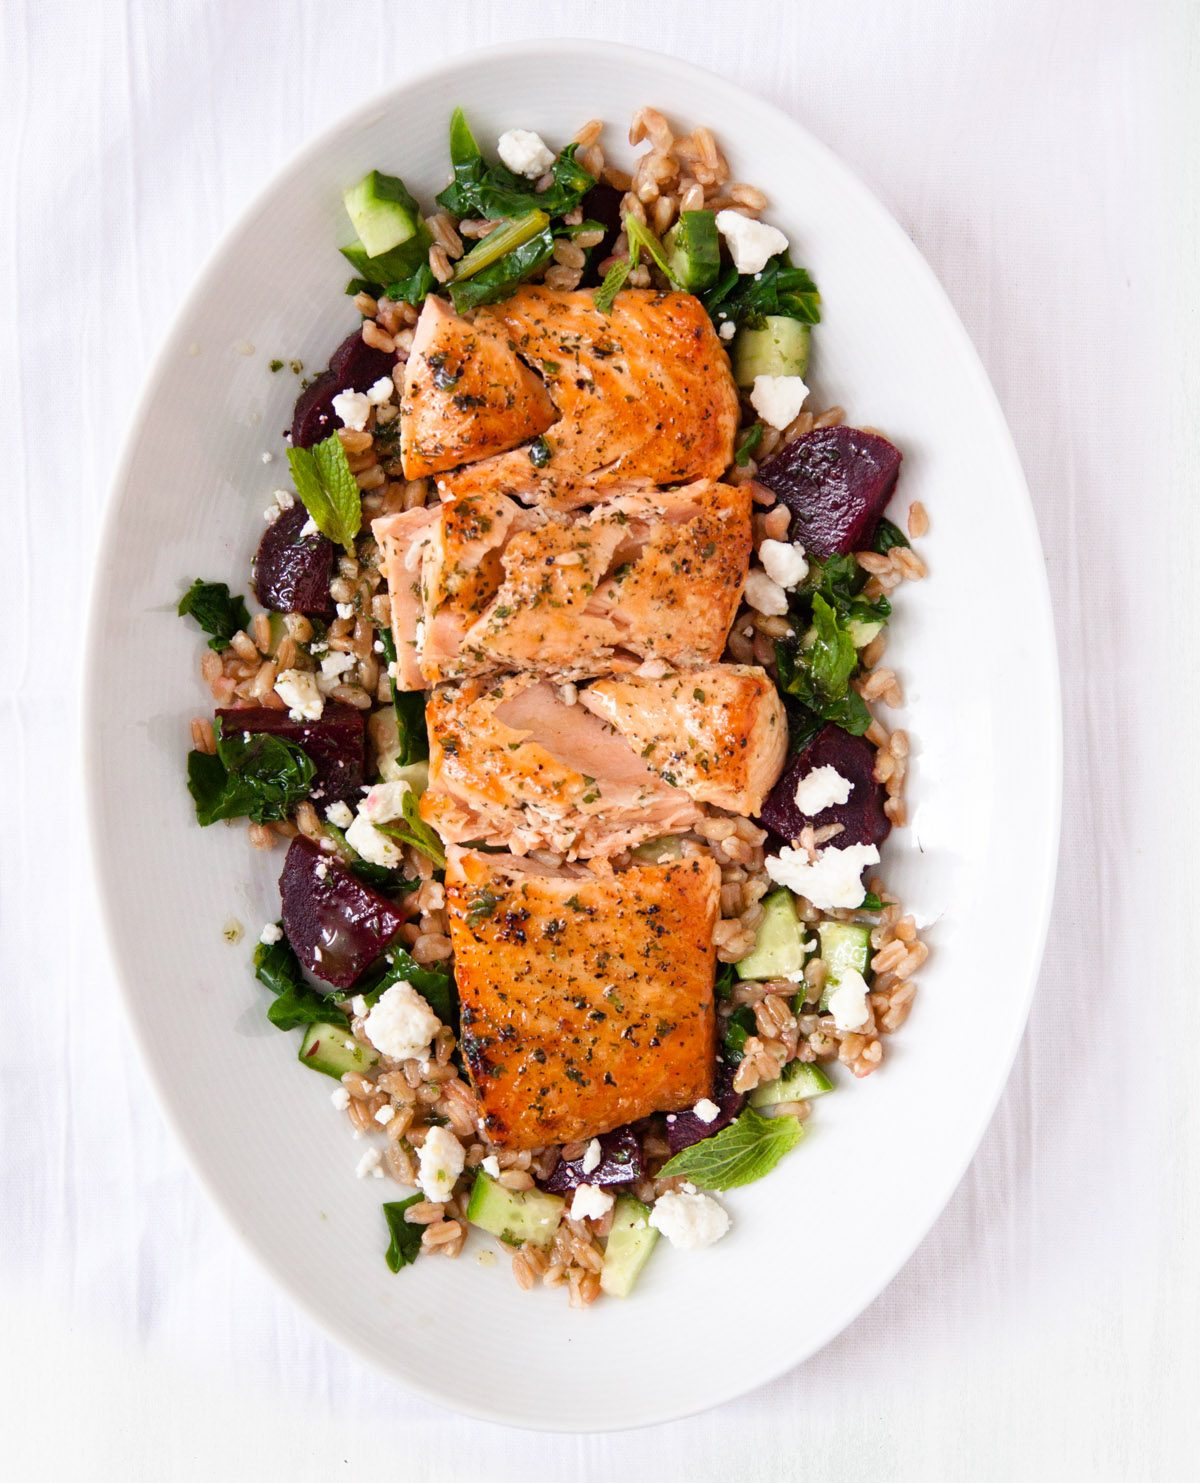 Farro and Salmon Salad with Beets and Greens